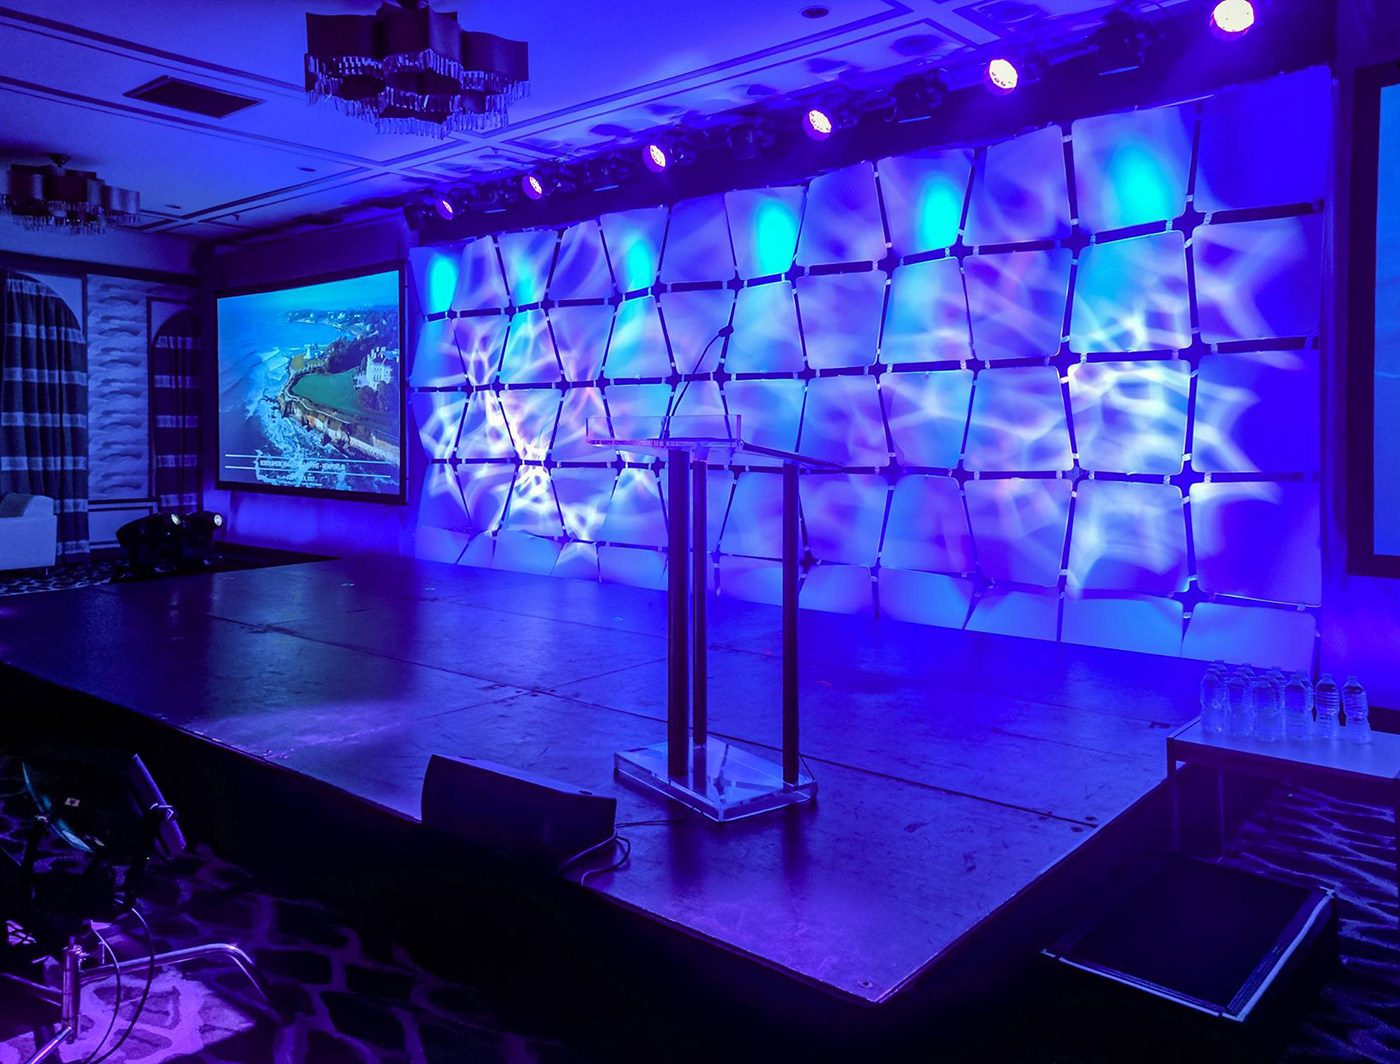 Wafer Panels made an impact onstage with projection and lighting